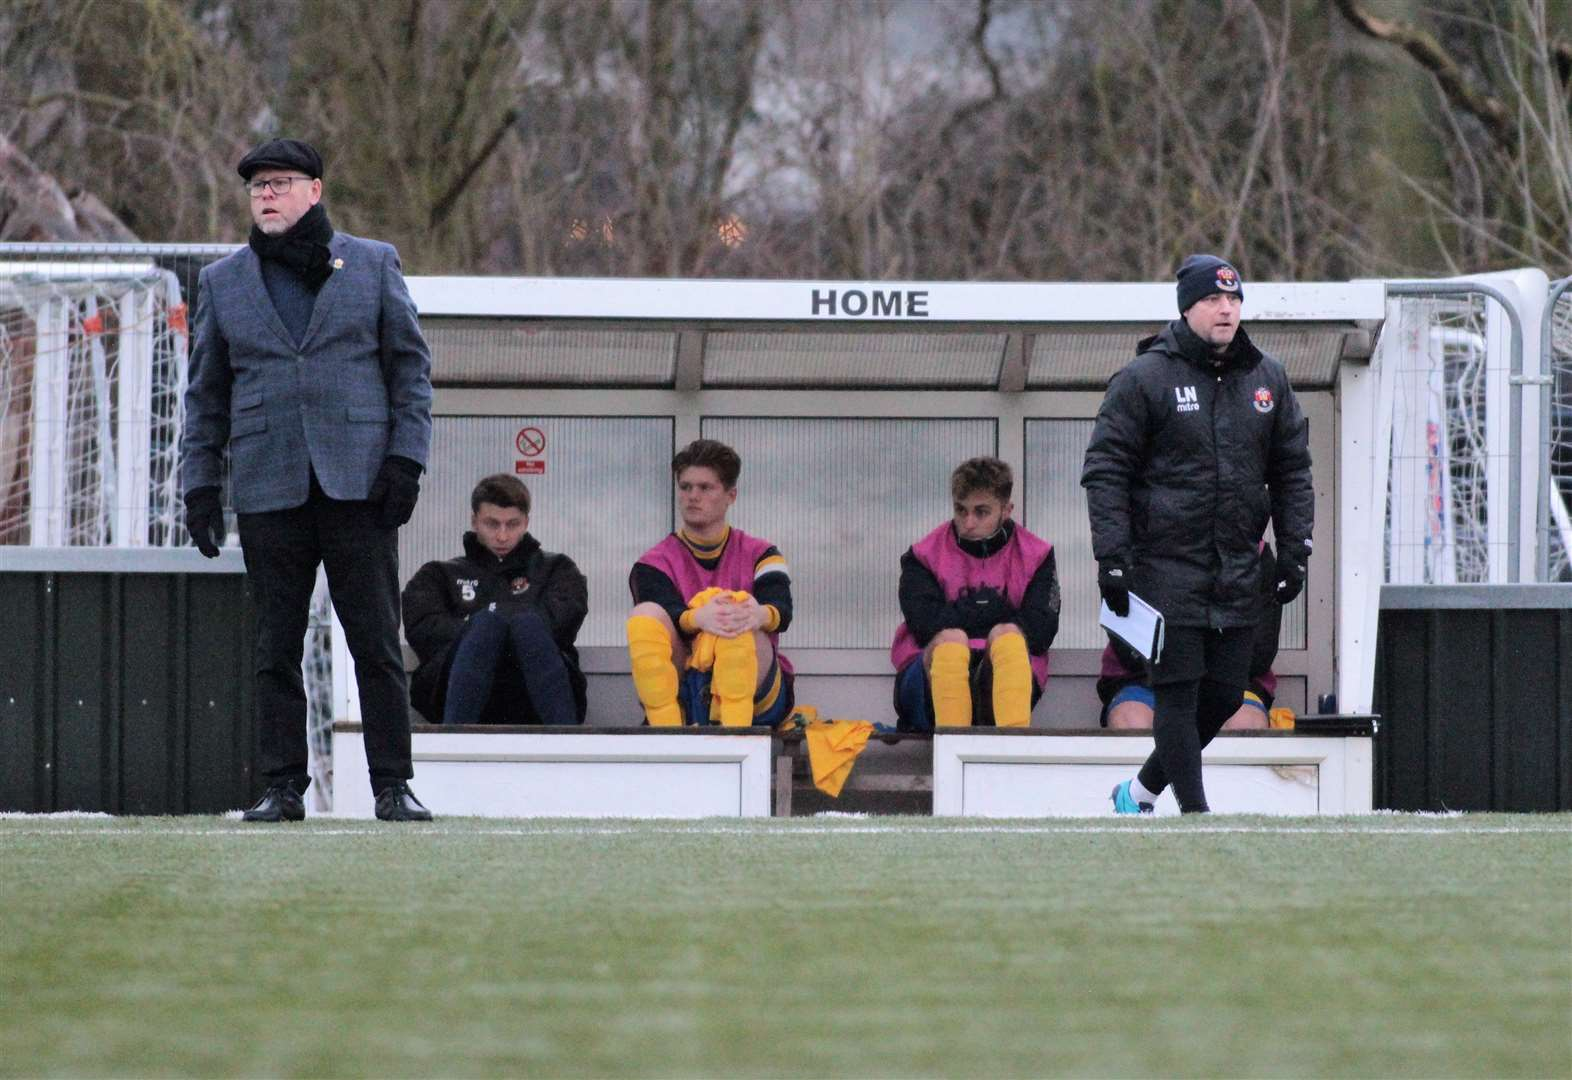 ISTHMIAN LEAGUE: Mark Morsley's entire coaching staff fired at AFC Sudbury